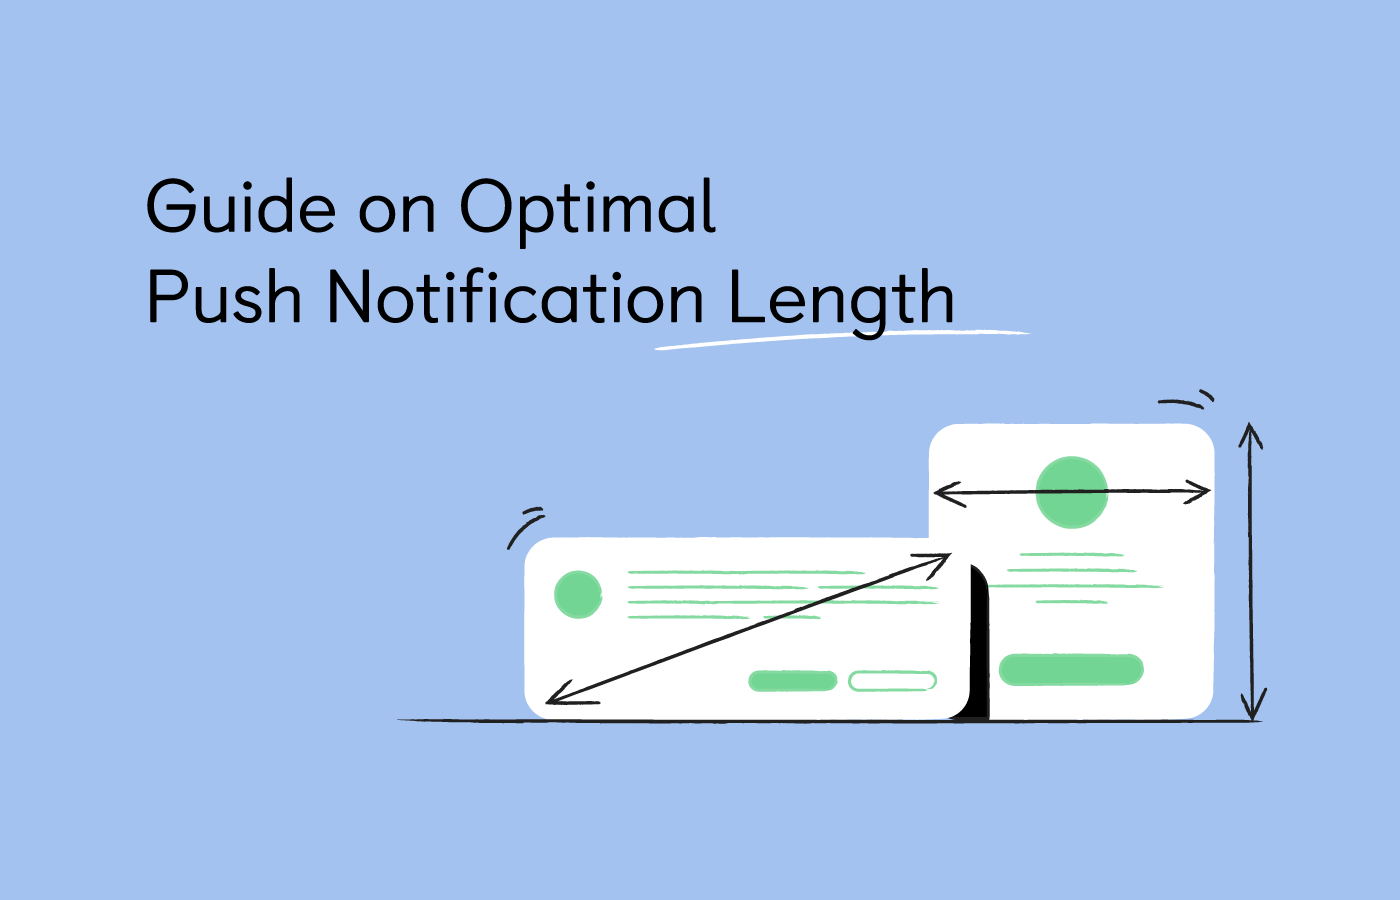 Push Notification Character Limit for Android, iOS, and Web